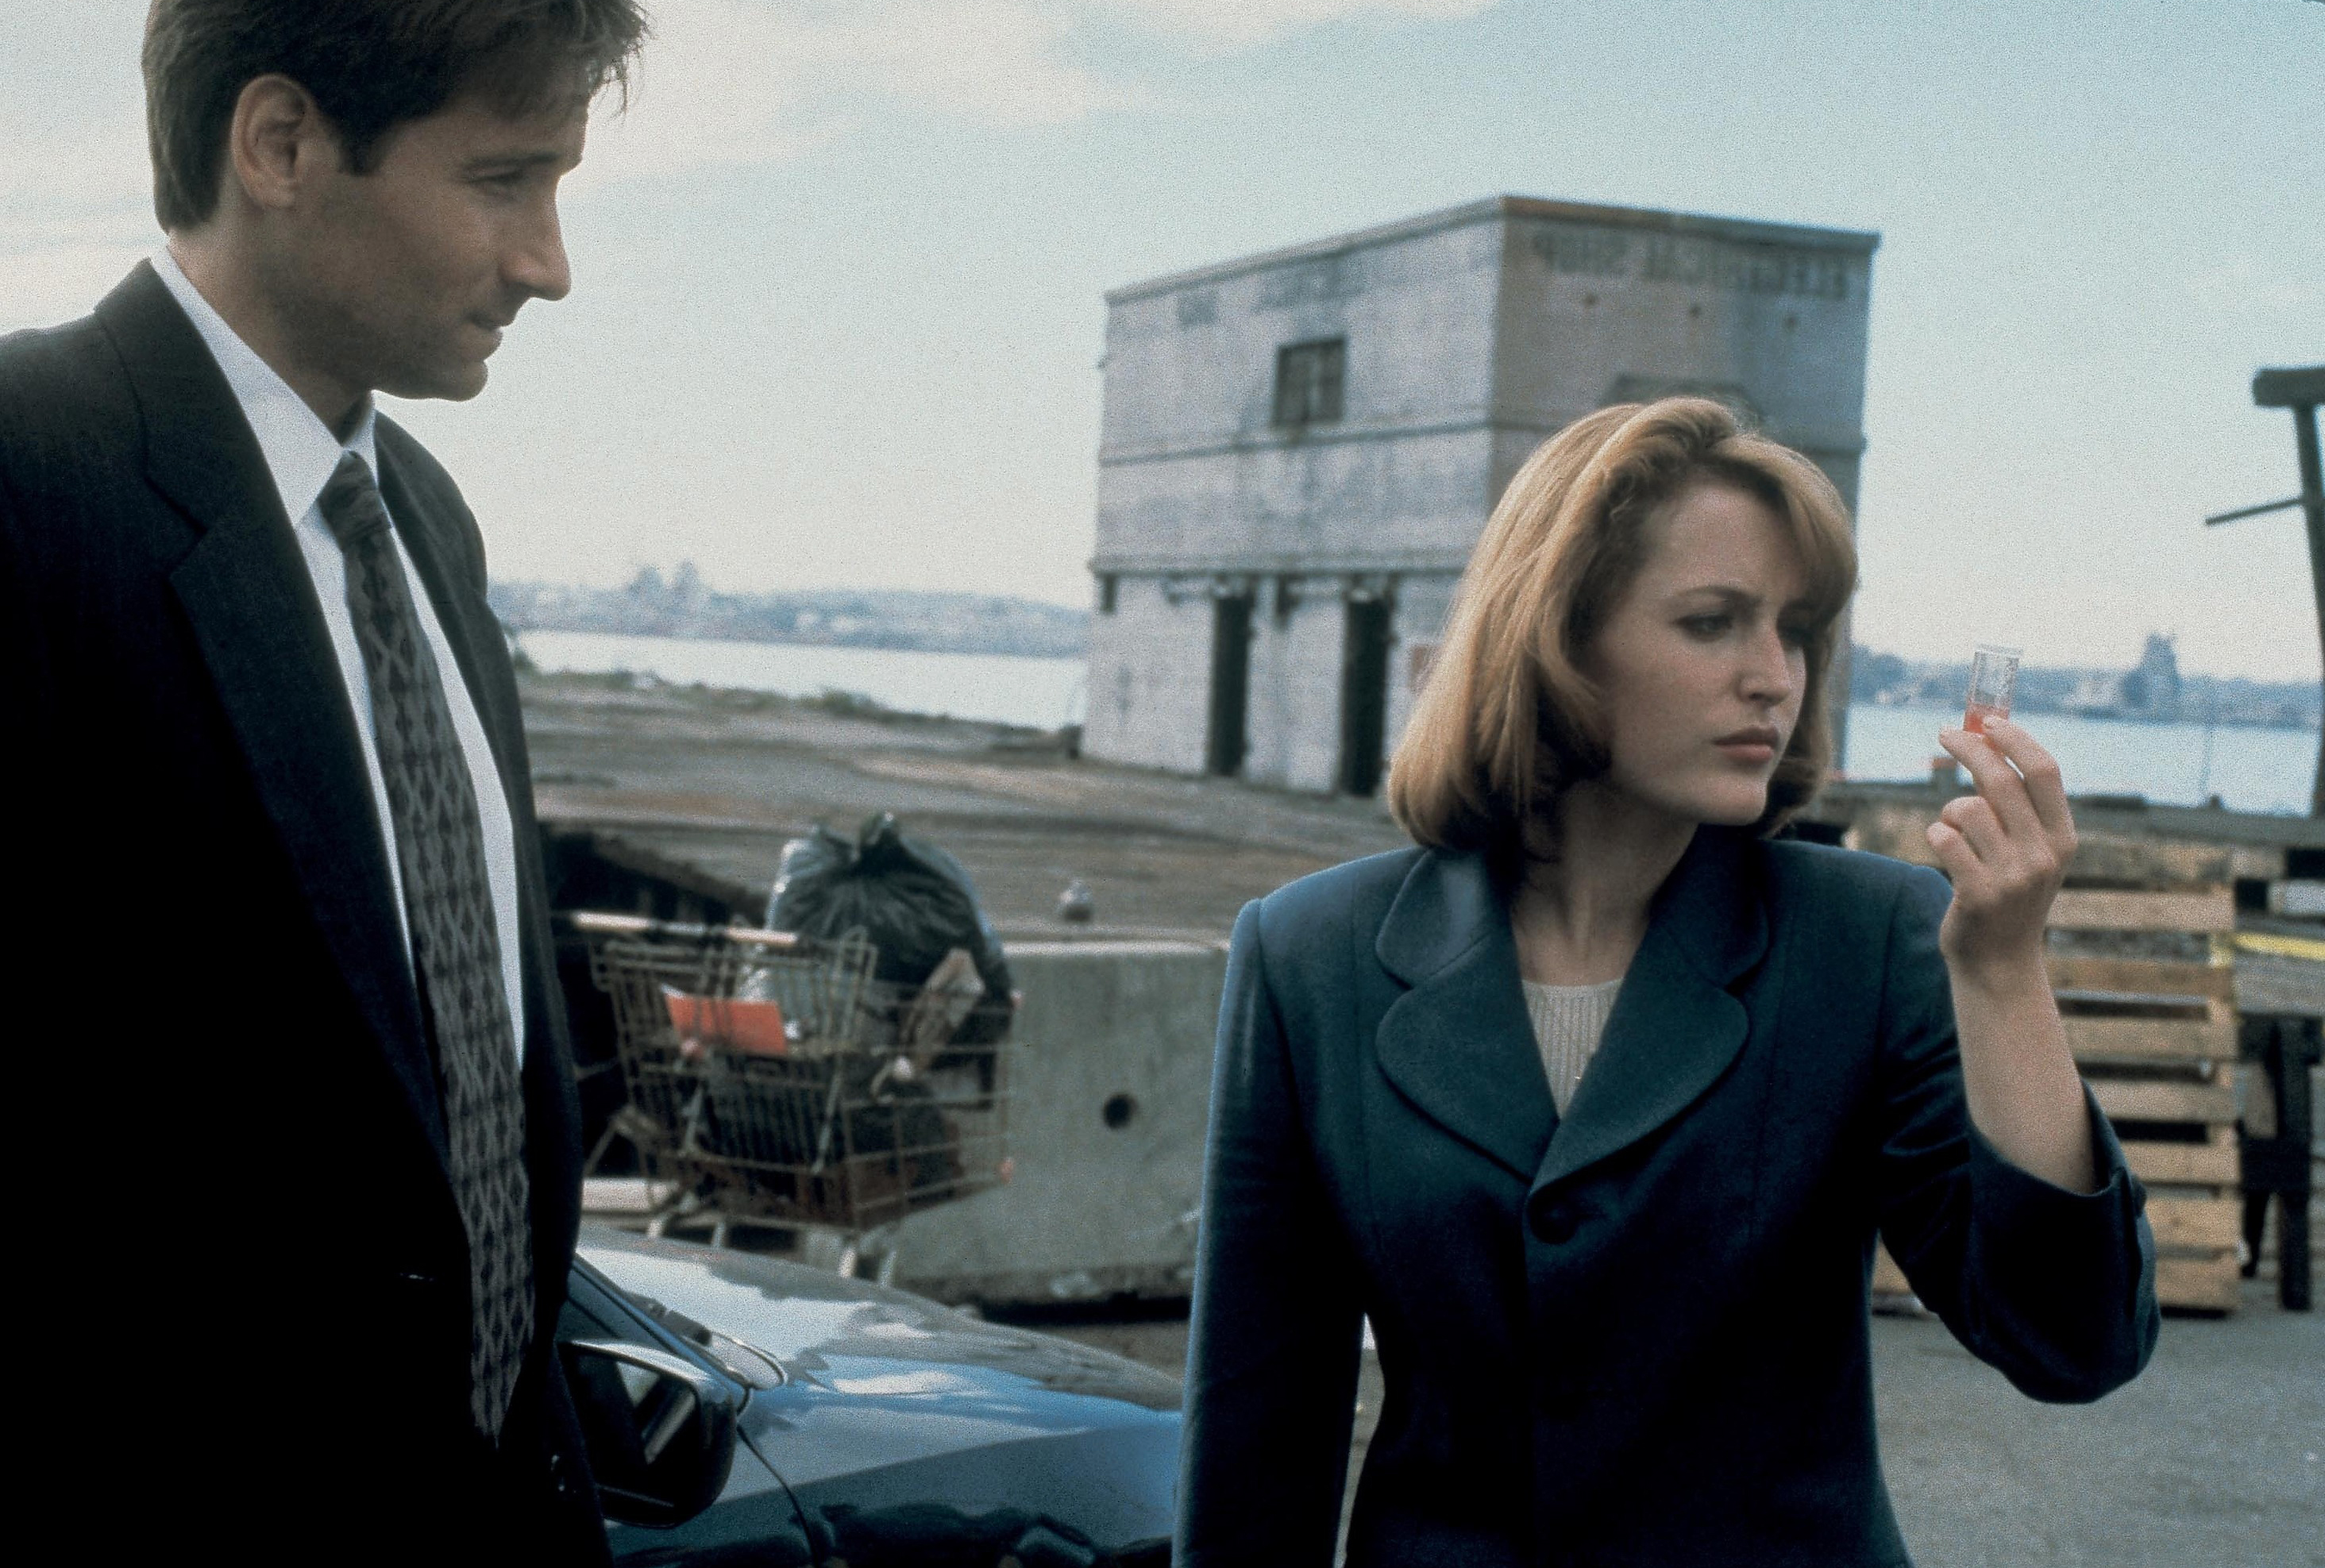 David Duchovny and Gillian Anderson are seen in The X-Files in 1995.